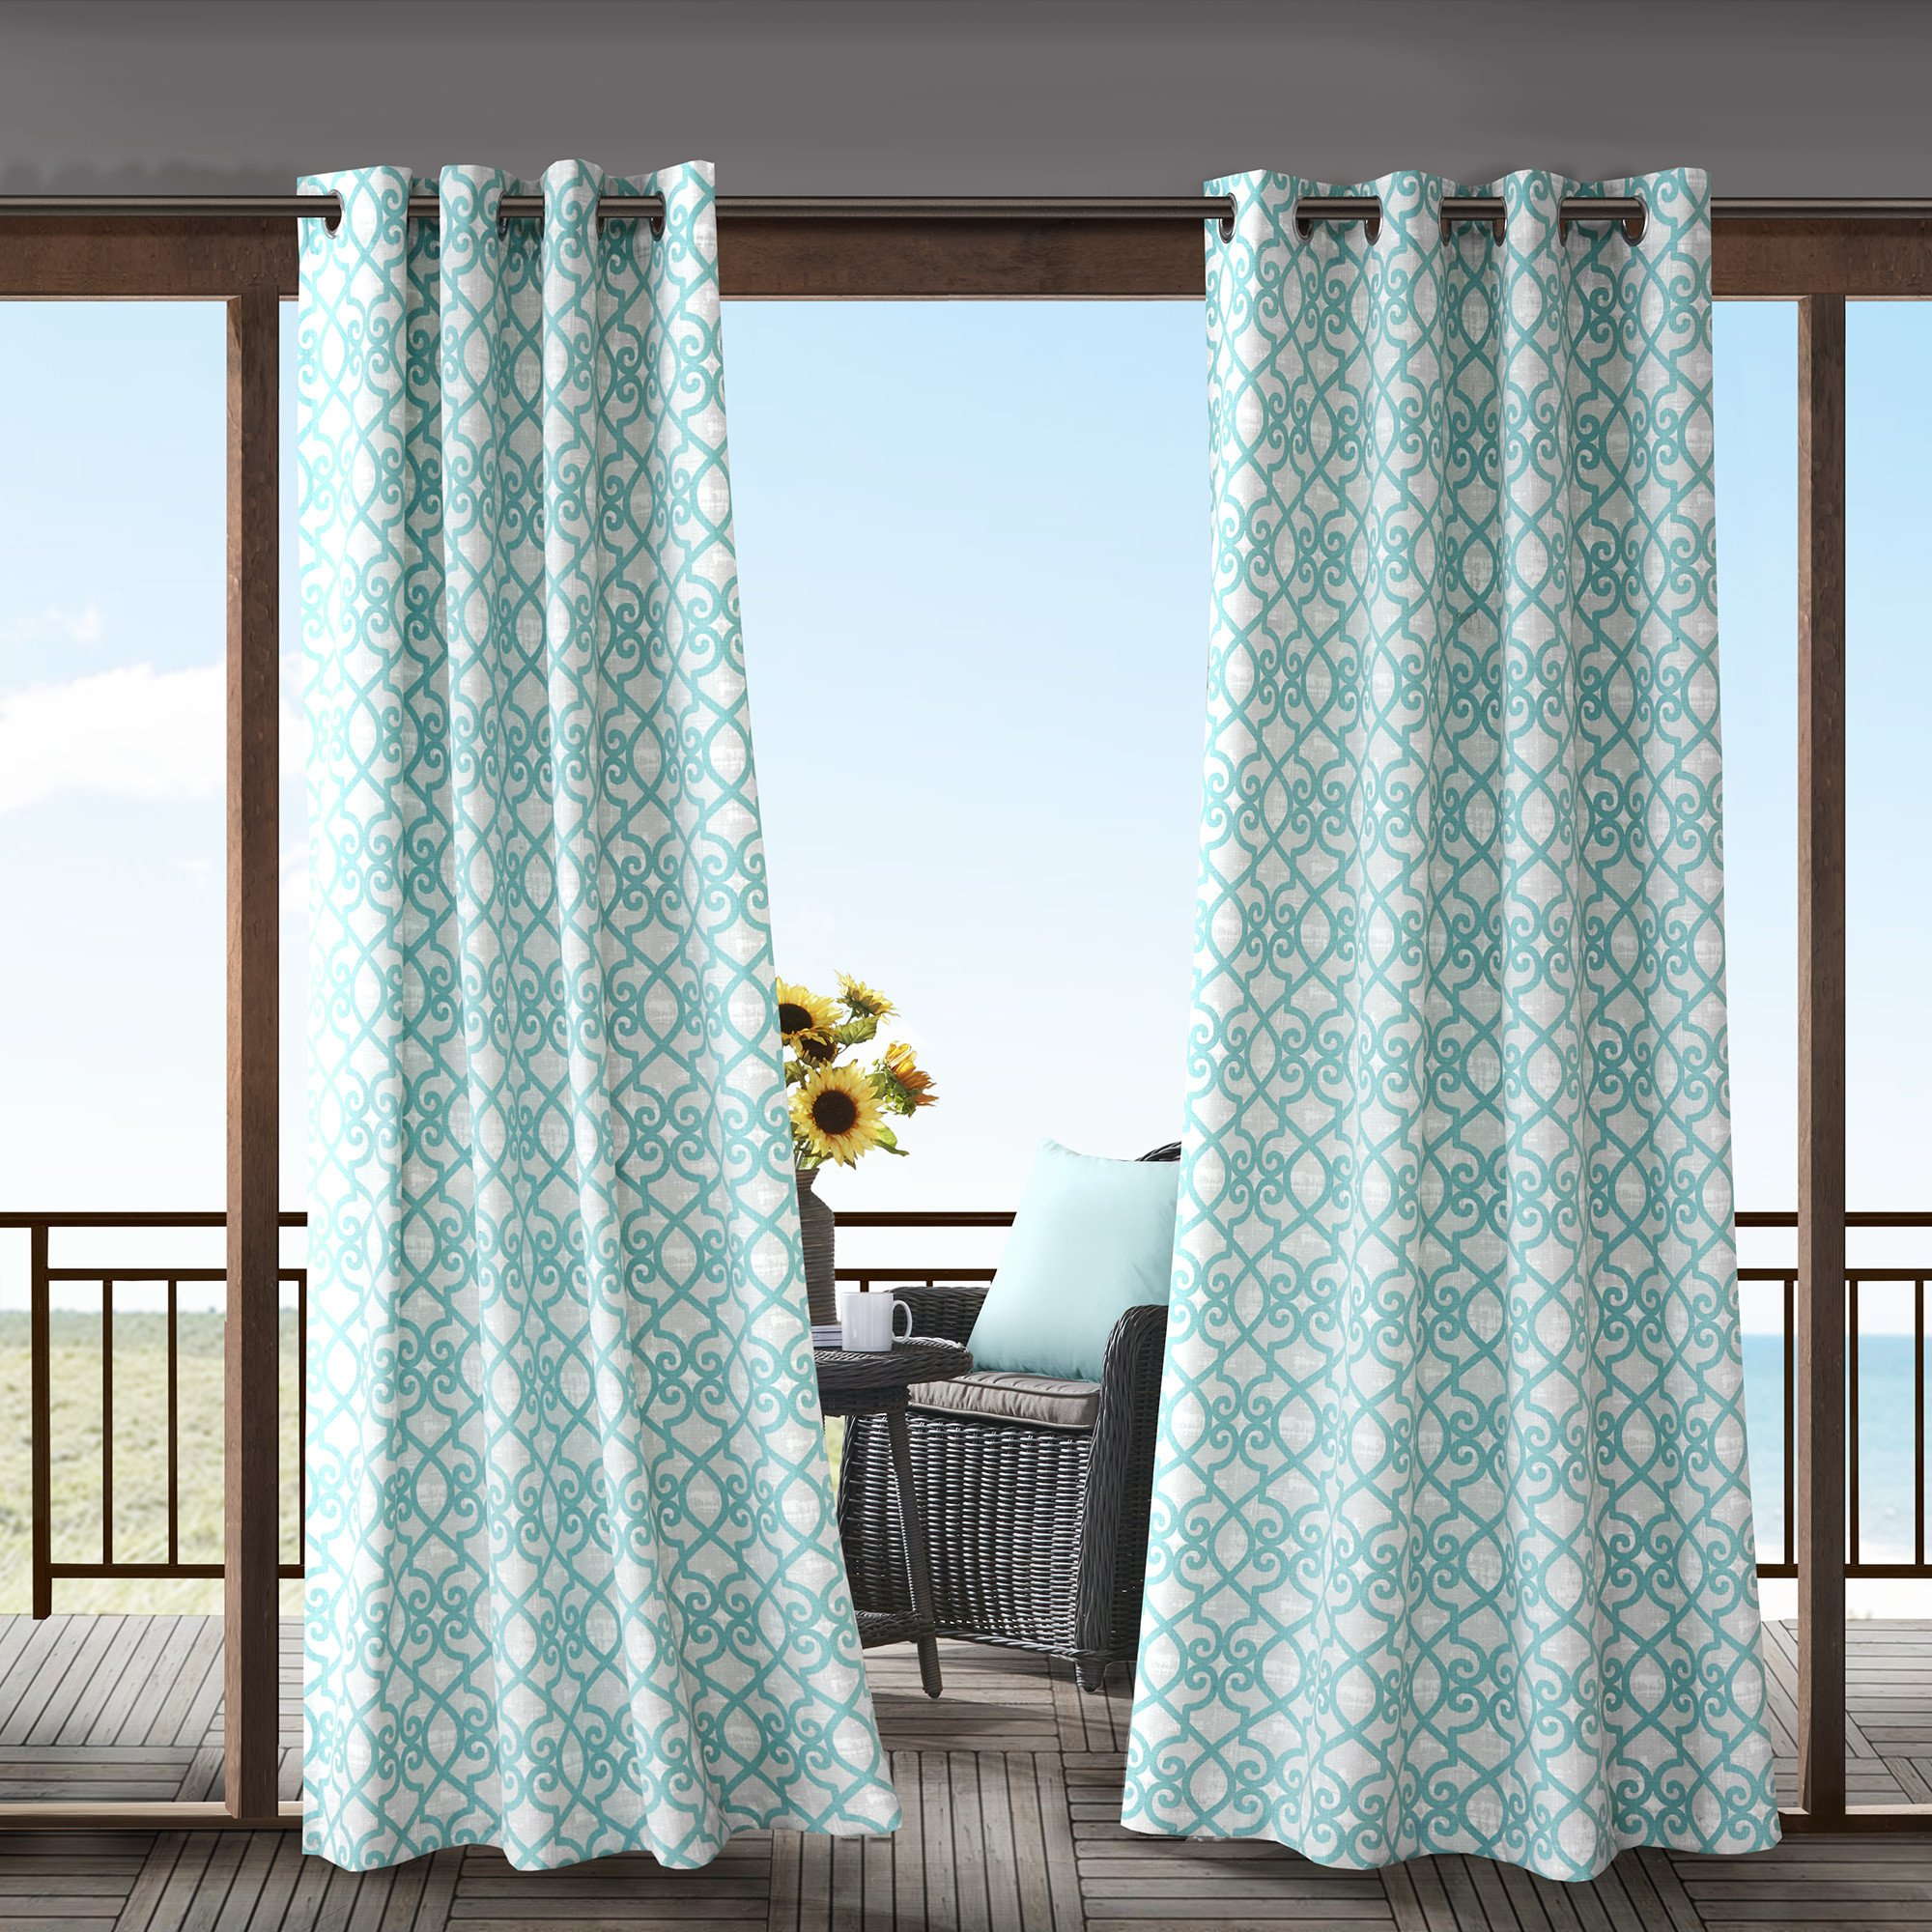 1 Piece Aqua Fretwork Gazebo Curtain Panel 84 Inch, Blue Trellis Outdoor Curtain Light Filtering For Patio Porch, Water Resistant Indoor/outdoor Drapes For Sunroom Pergola Garden Grommet, Polyester